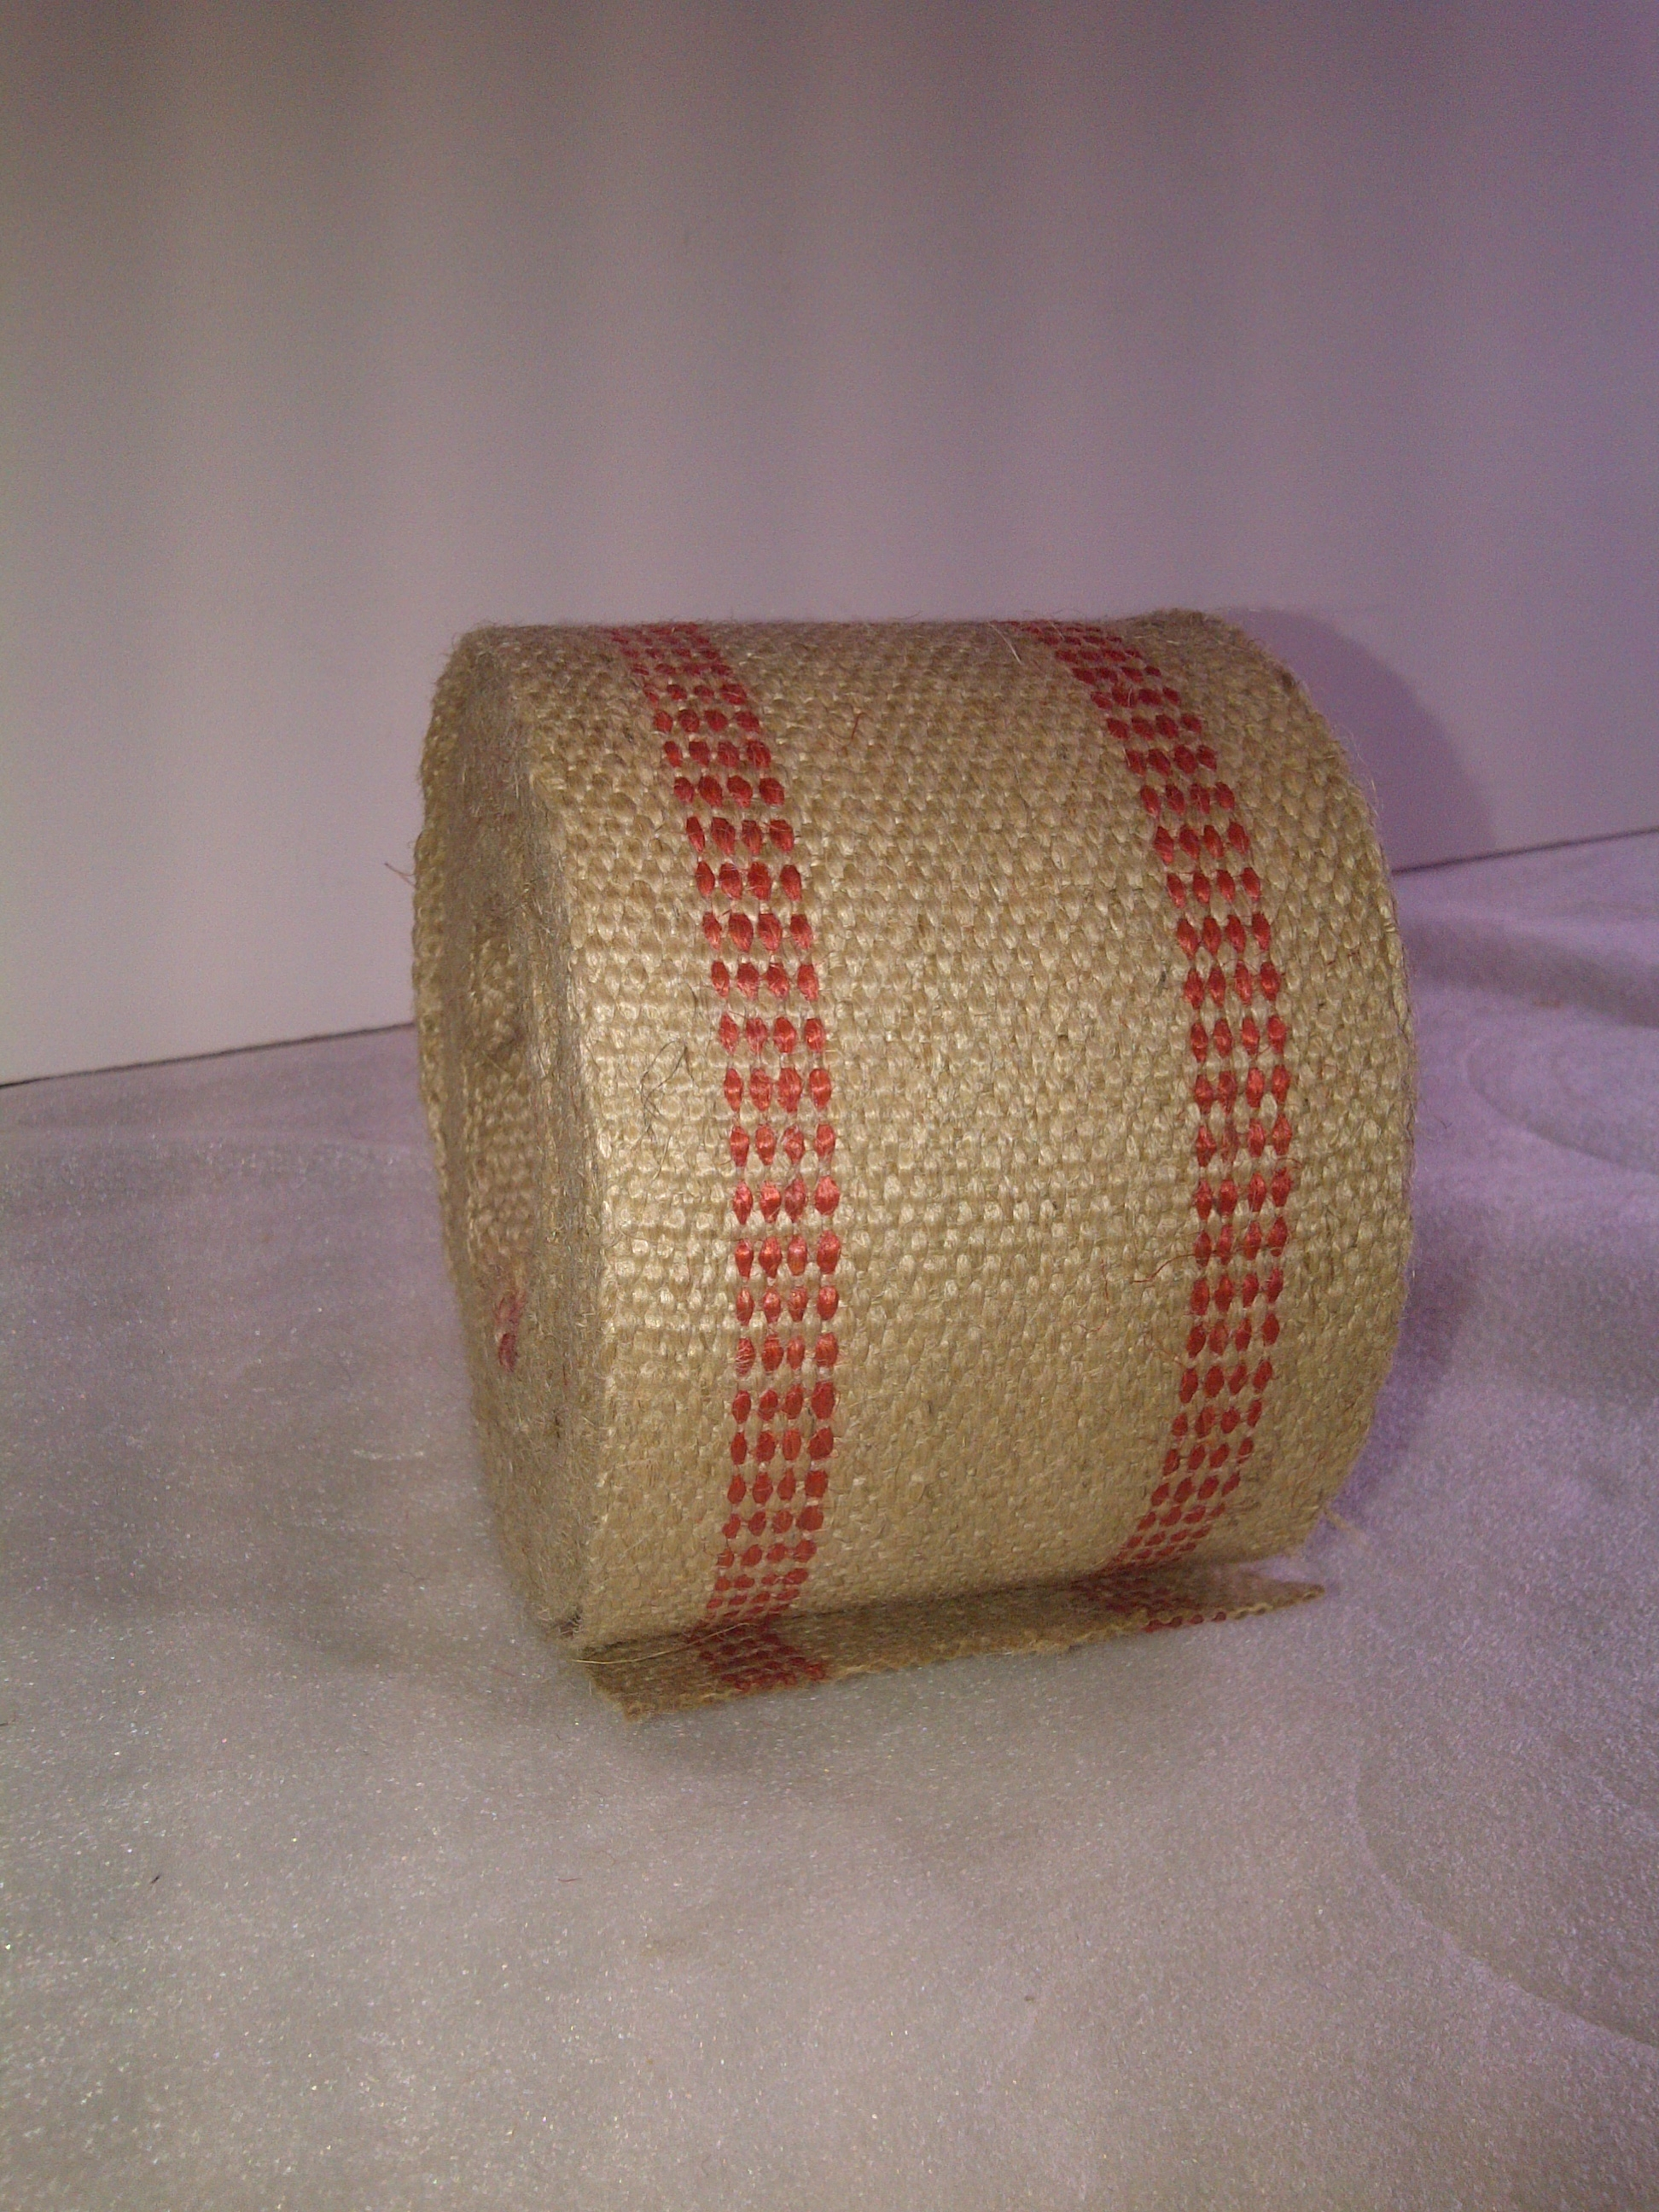 12 Yards of Red Burlap Webbing